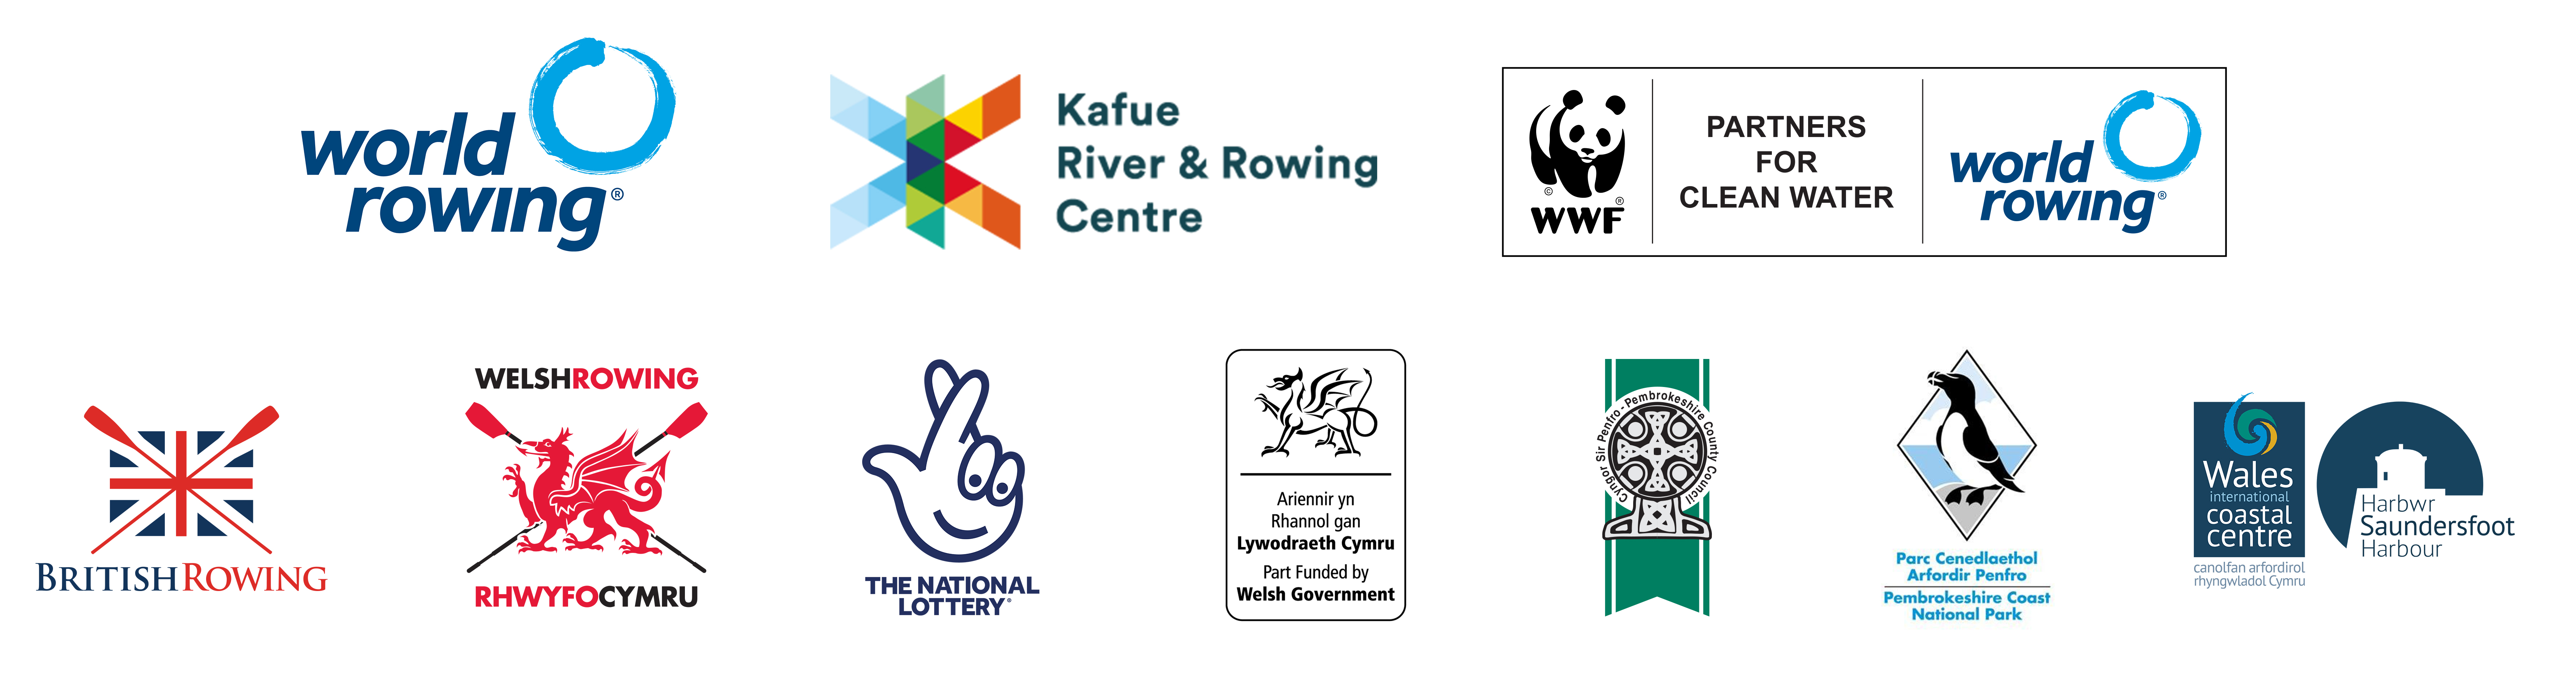 World Rowing | Kafue River & Rowing Centre | WWF | British Rowing | Welsh Rowing | National Lottery | Welsh Government | Pembrokeshire County Council | Pembrokeshire Coast National Park | Saundersfoot Harbour